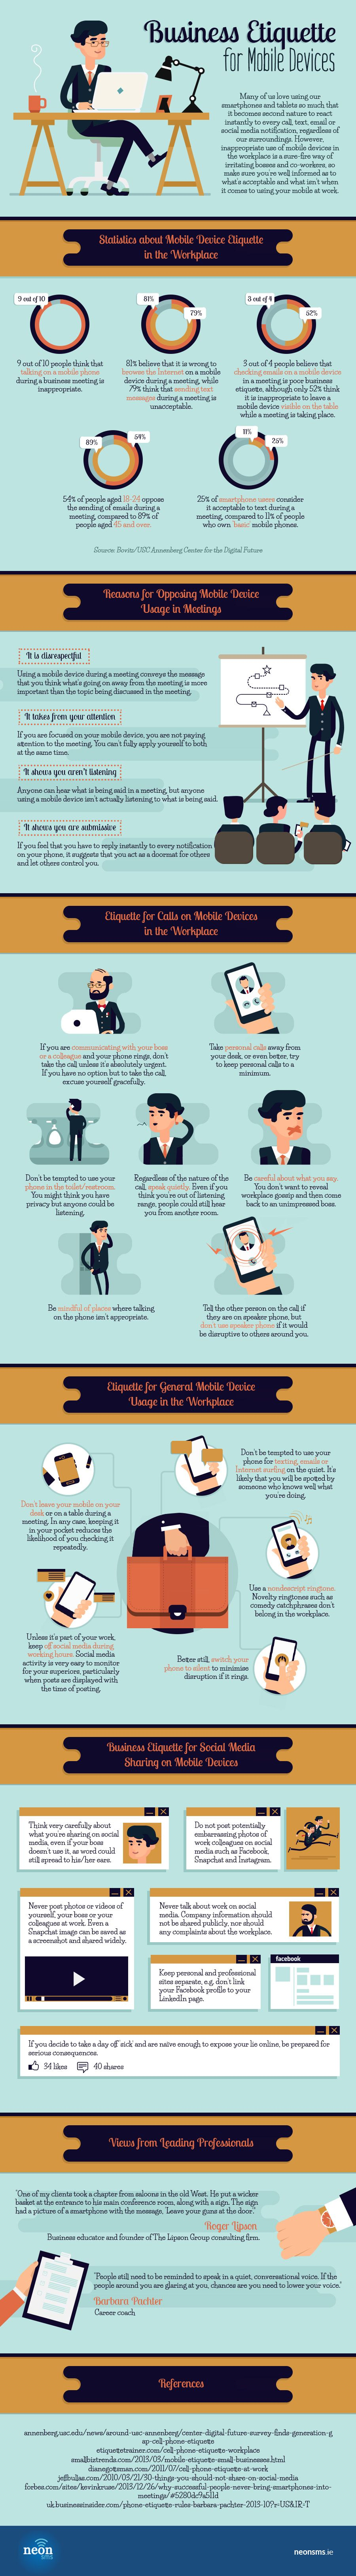 Business Etiquette for Mobile Devices